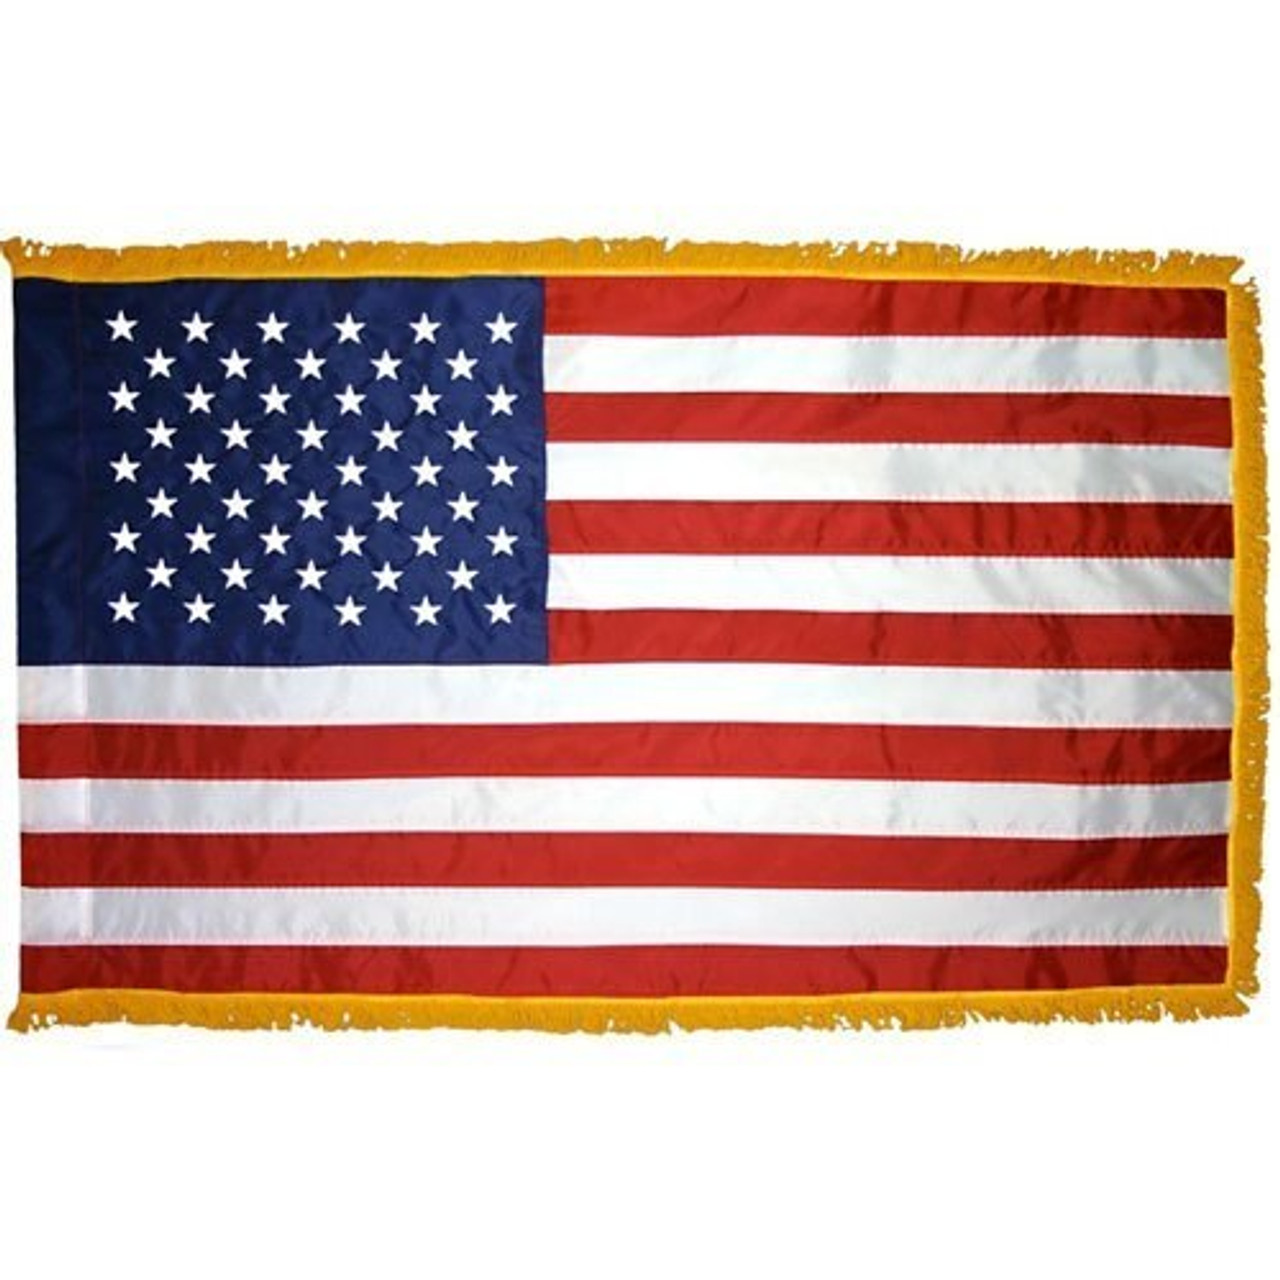 Indoor American Flag (Fully Sewn)